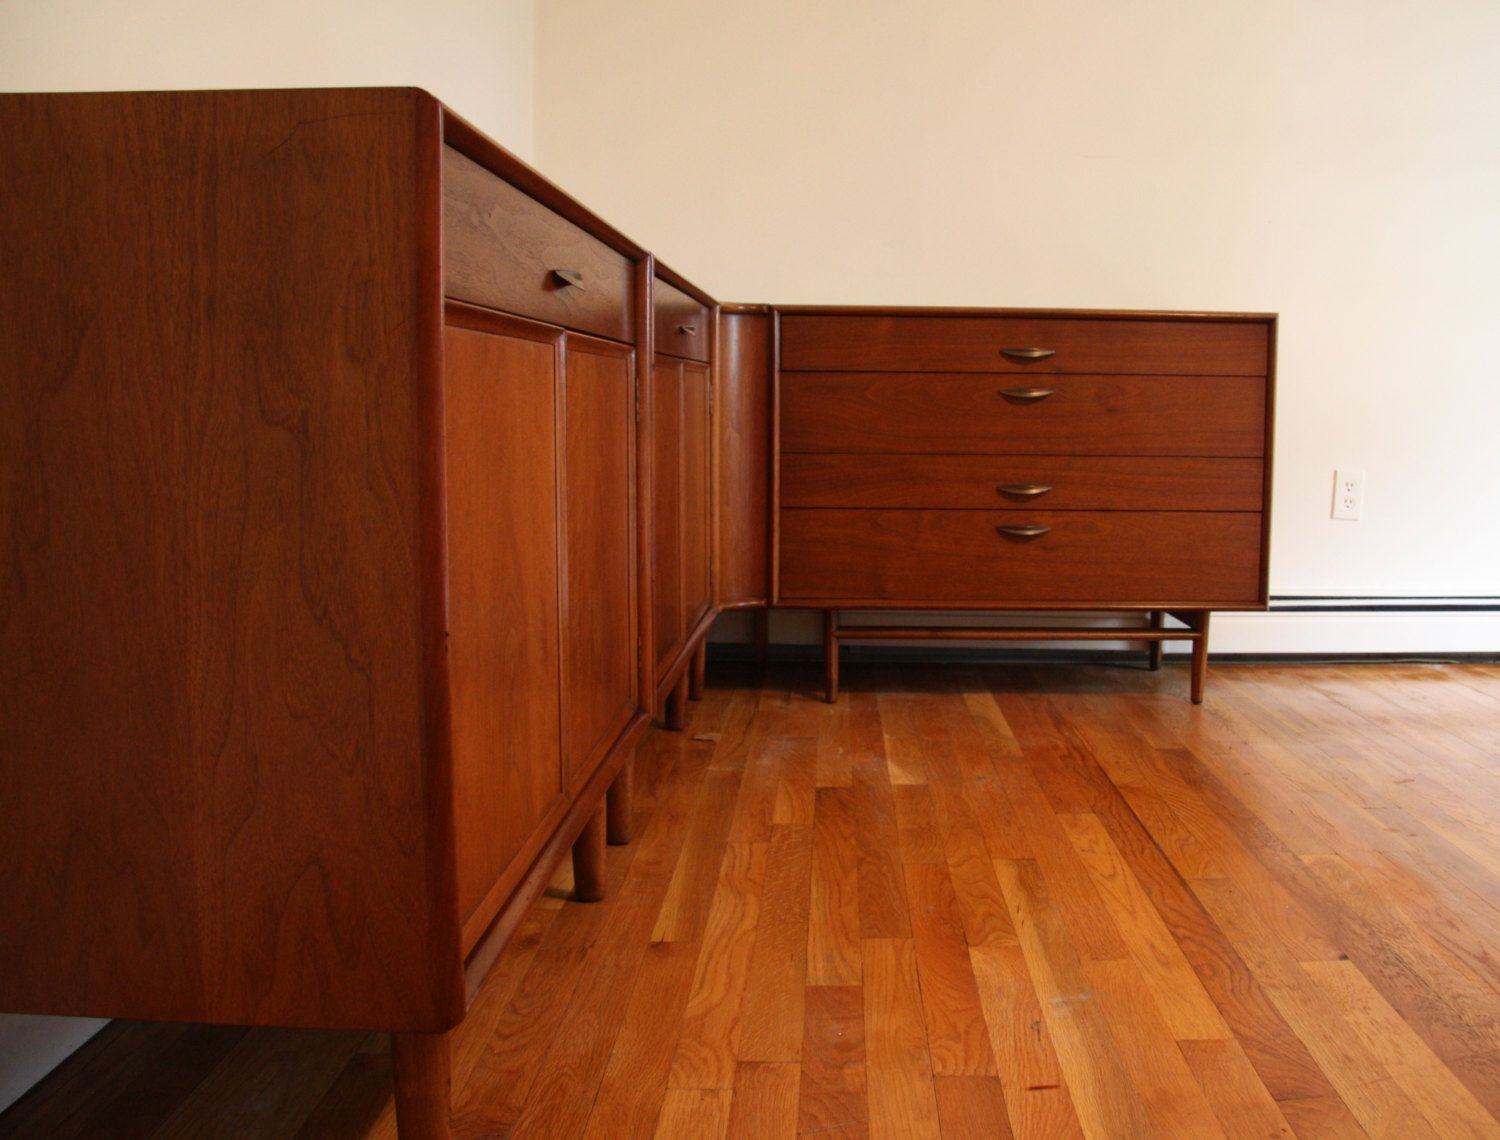 Superior Drexel Parallel Series Bedroom Dresser Chest Set By Barney Flagg By  WrightFindsinMCM On Etsy